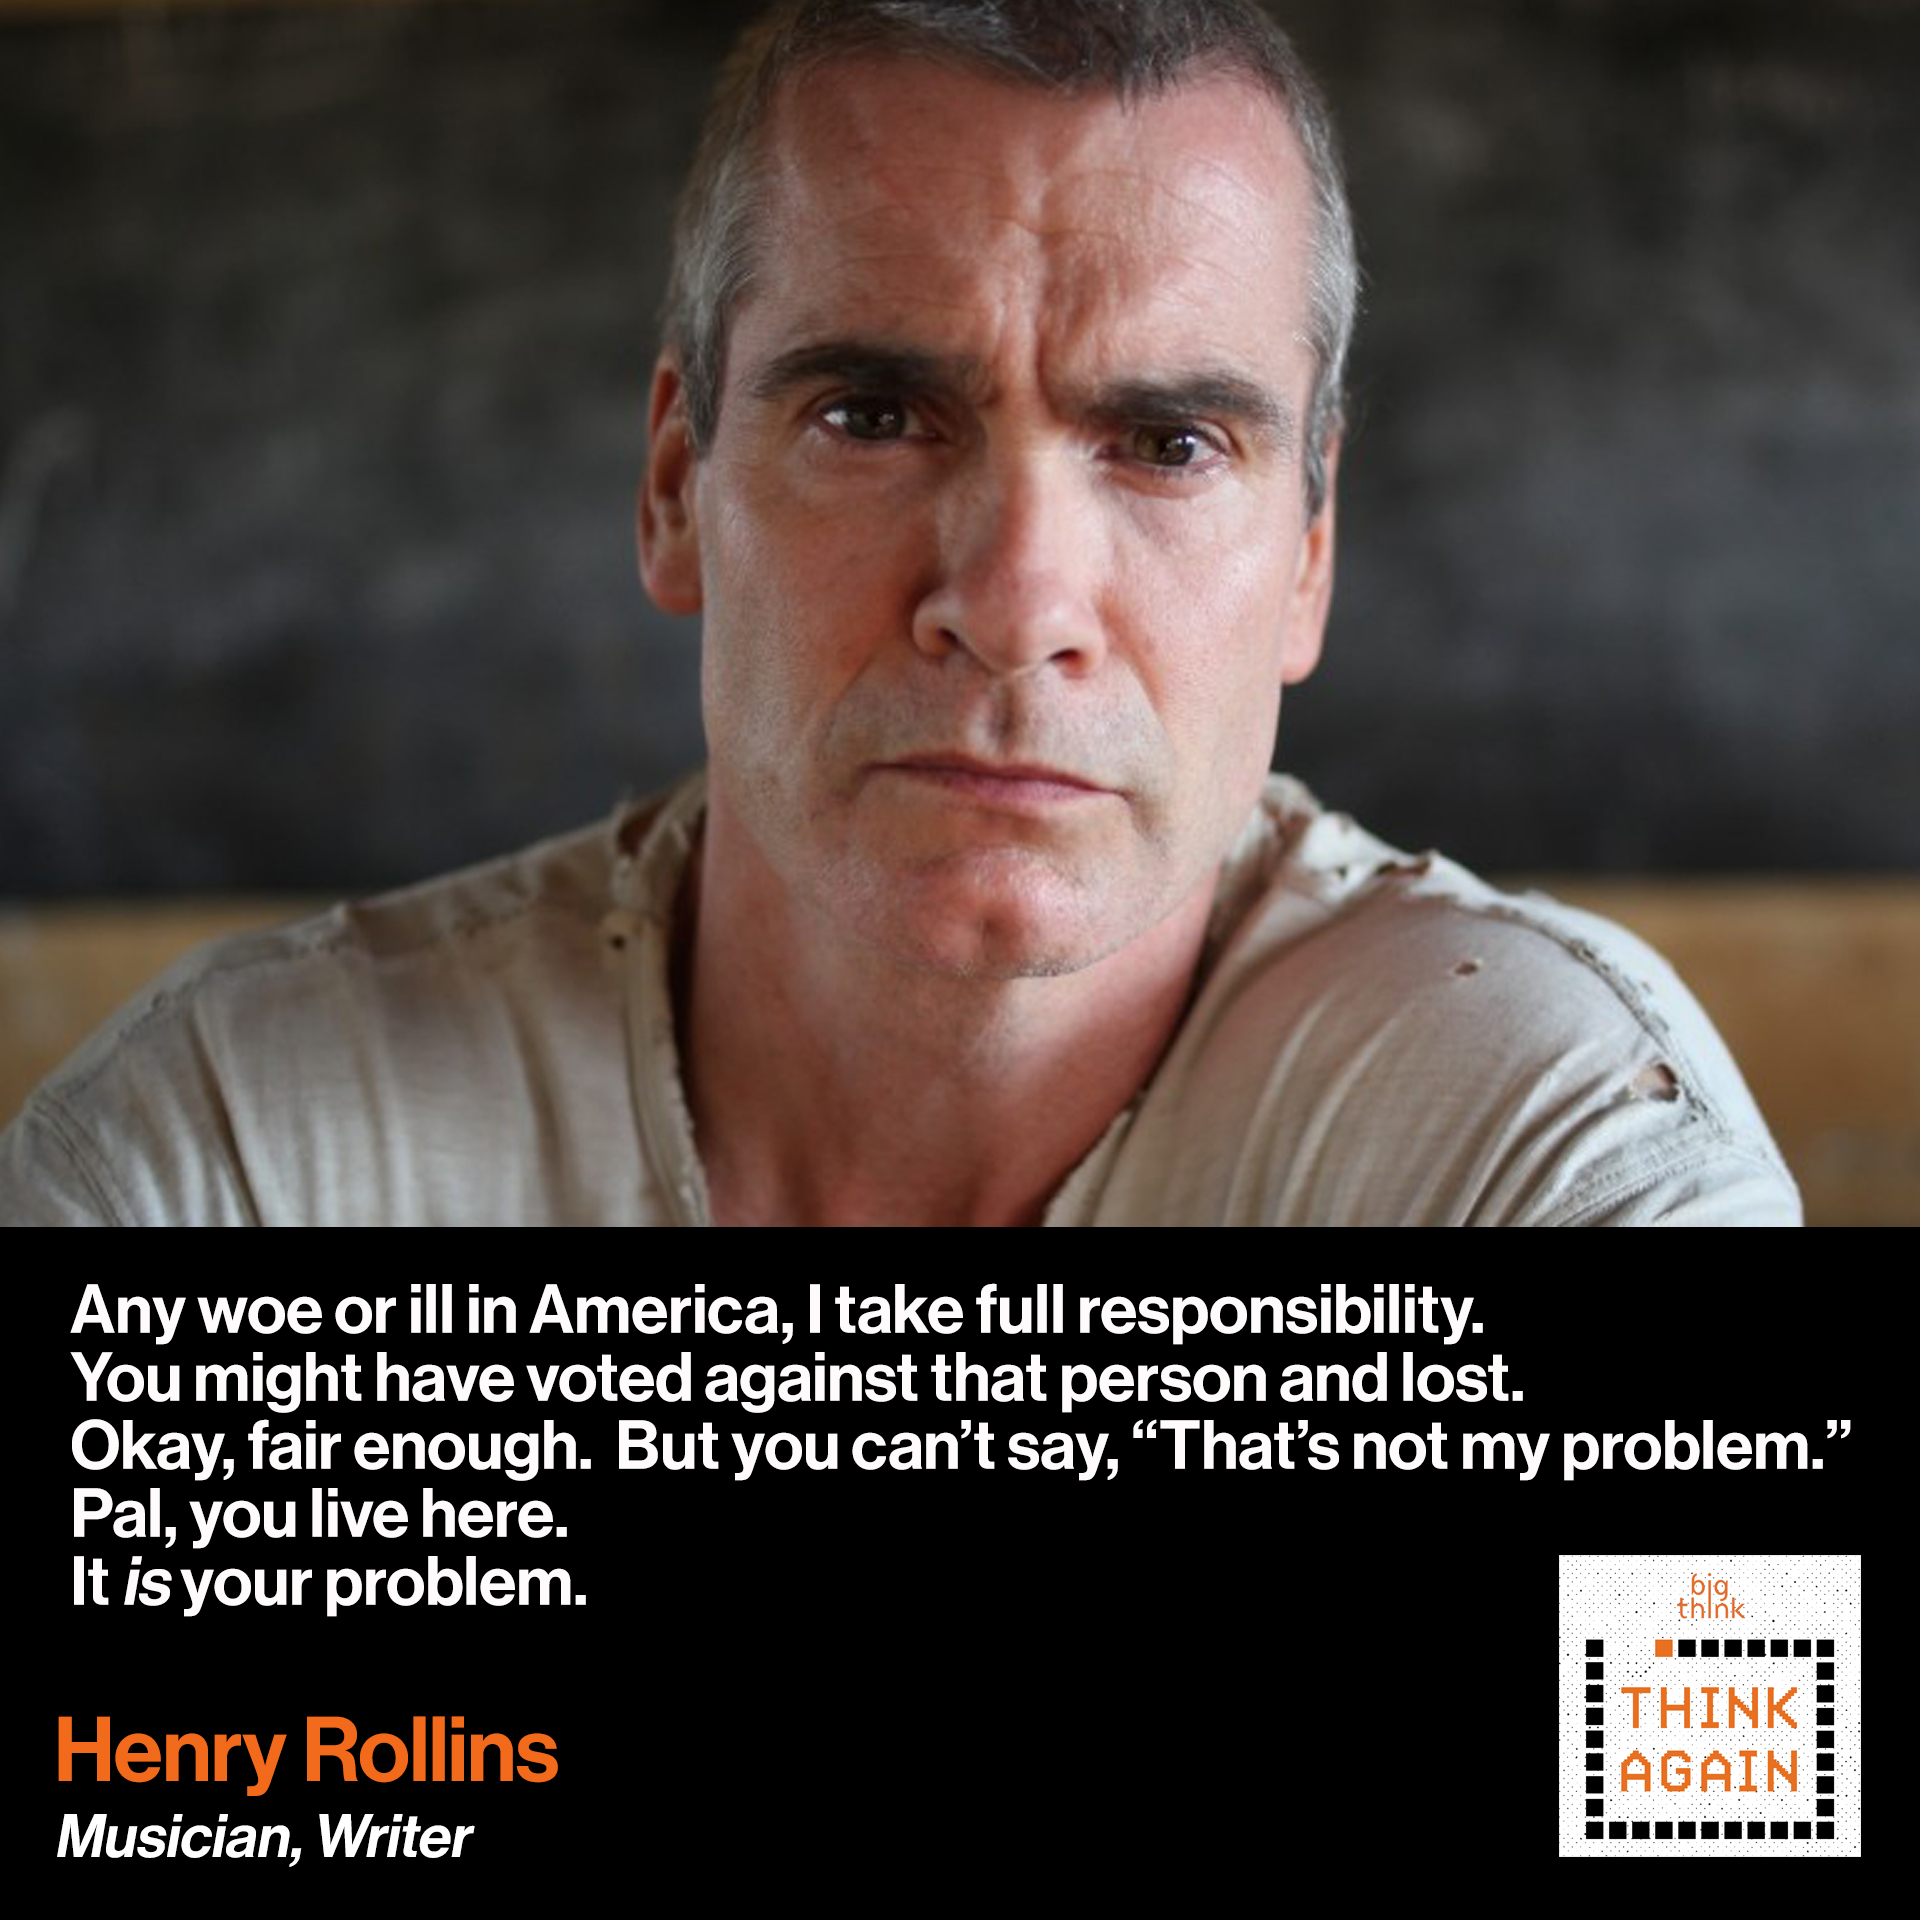 "Henry Rollins: Any woe or ill in America, I take full responsibility. You might have voted against that person and lost.   Okay, fair enough.  But he's our problem and you  can't say ""that's not my problem.""  Pal, you live here.  It is your problem."